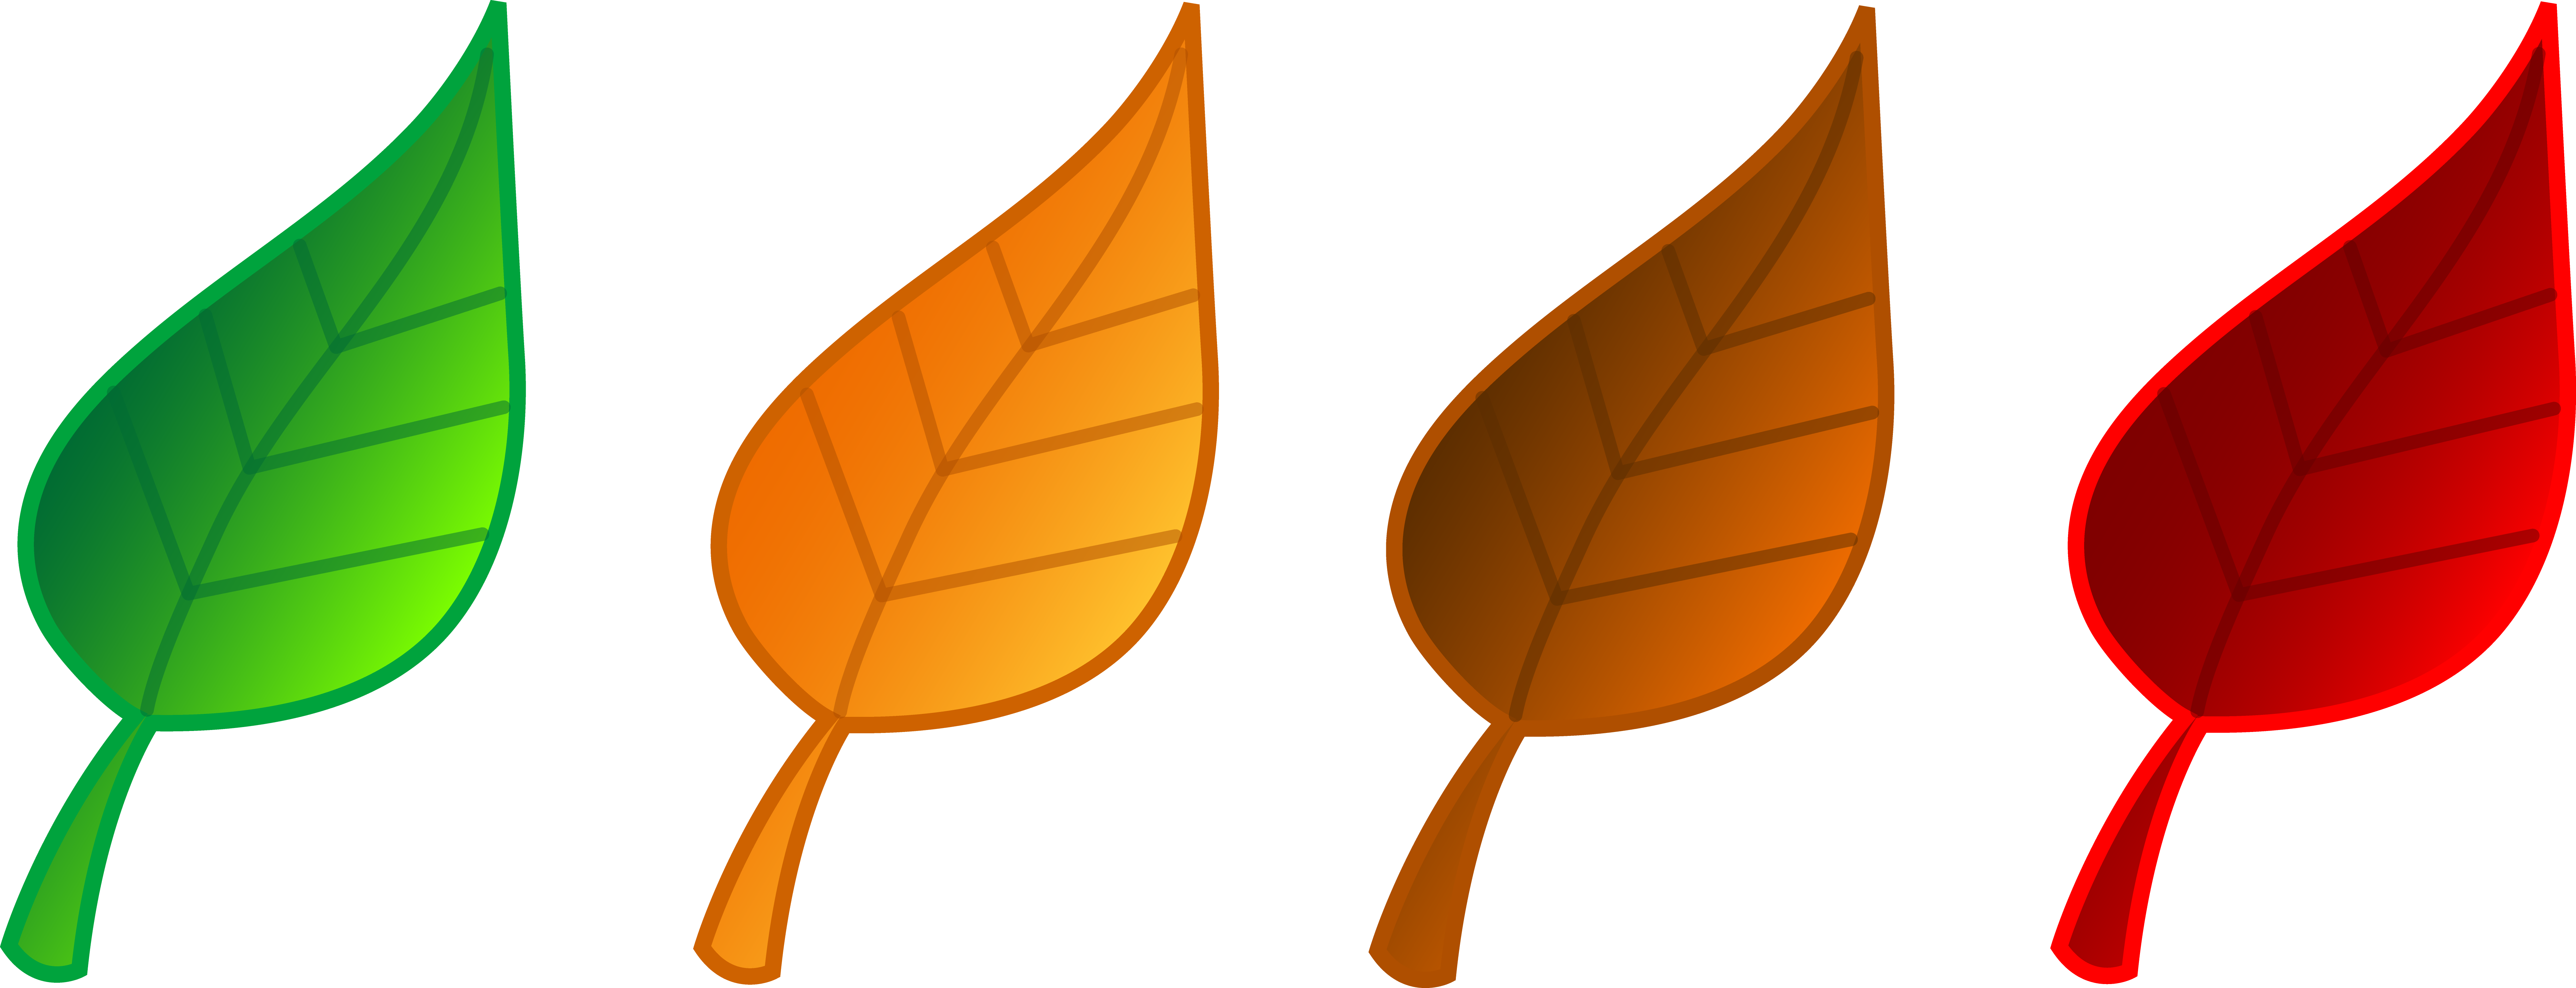 7840x3006 Fall Leaves Clip Art Free Vector For Free Download About Free 2